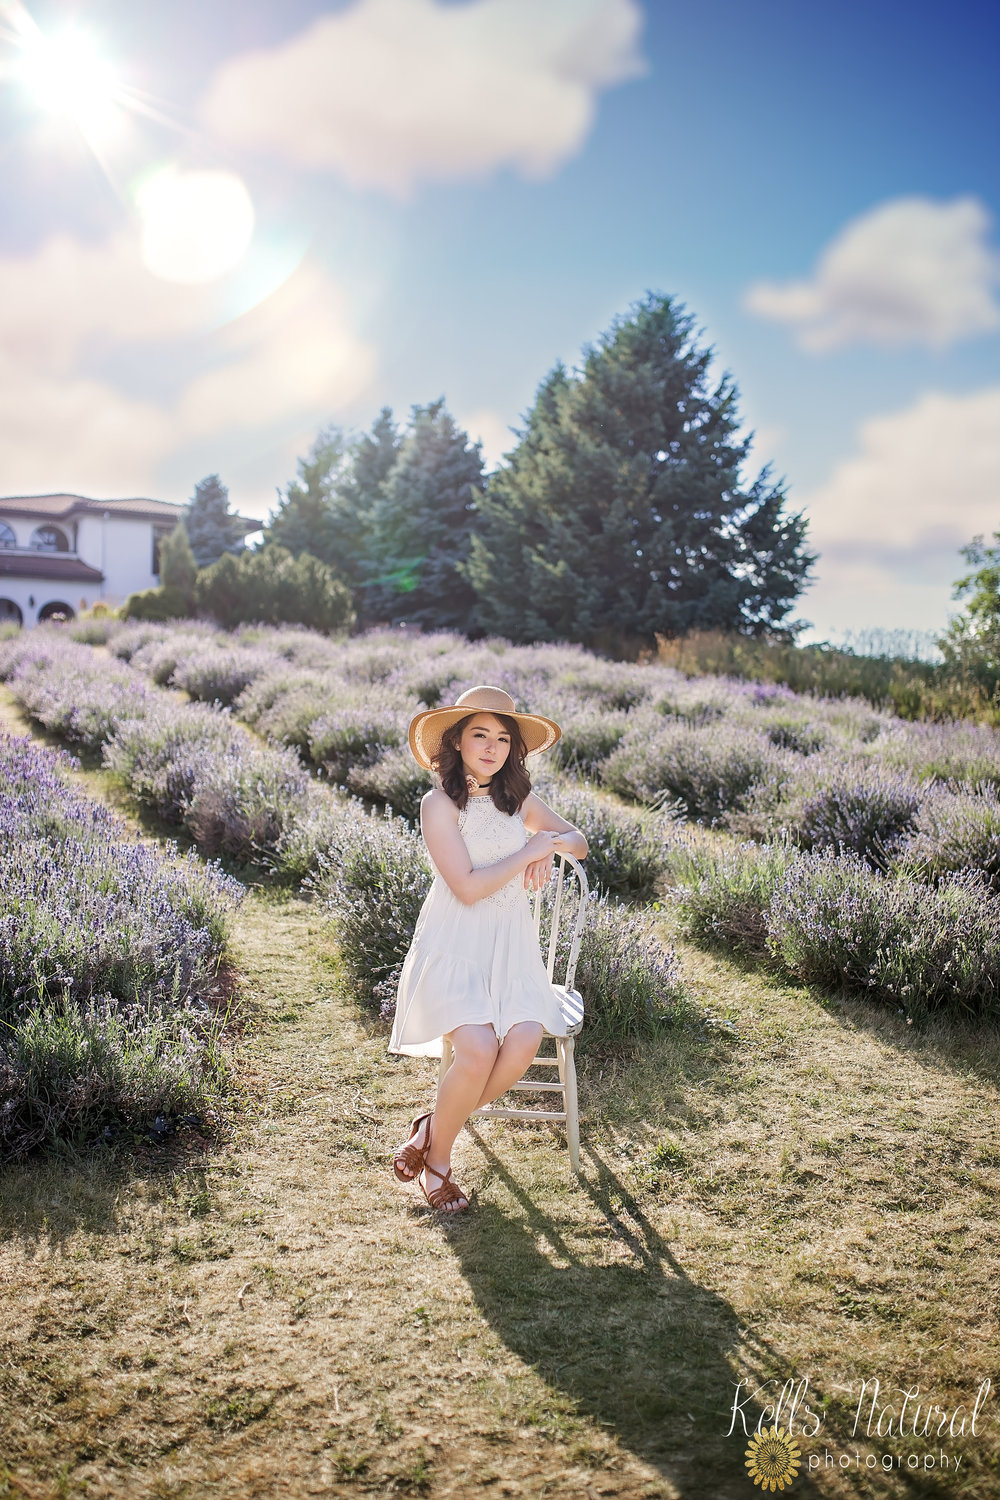 Fashion Portrait Photography in Lavender Field.jpeg